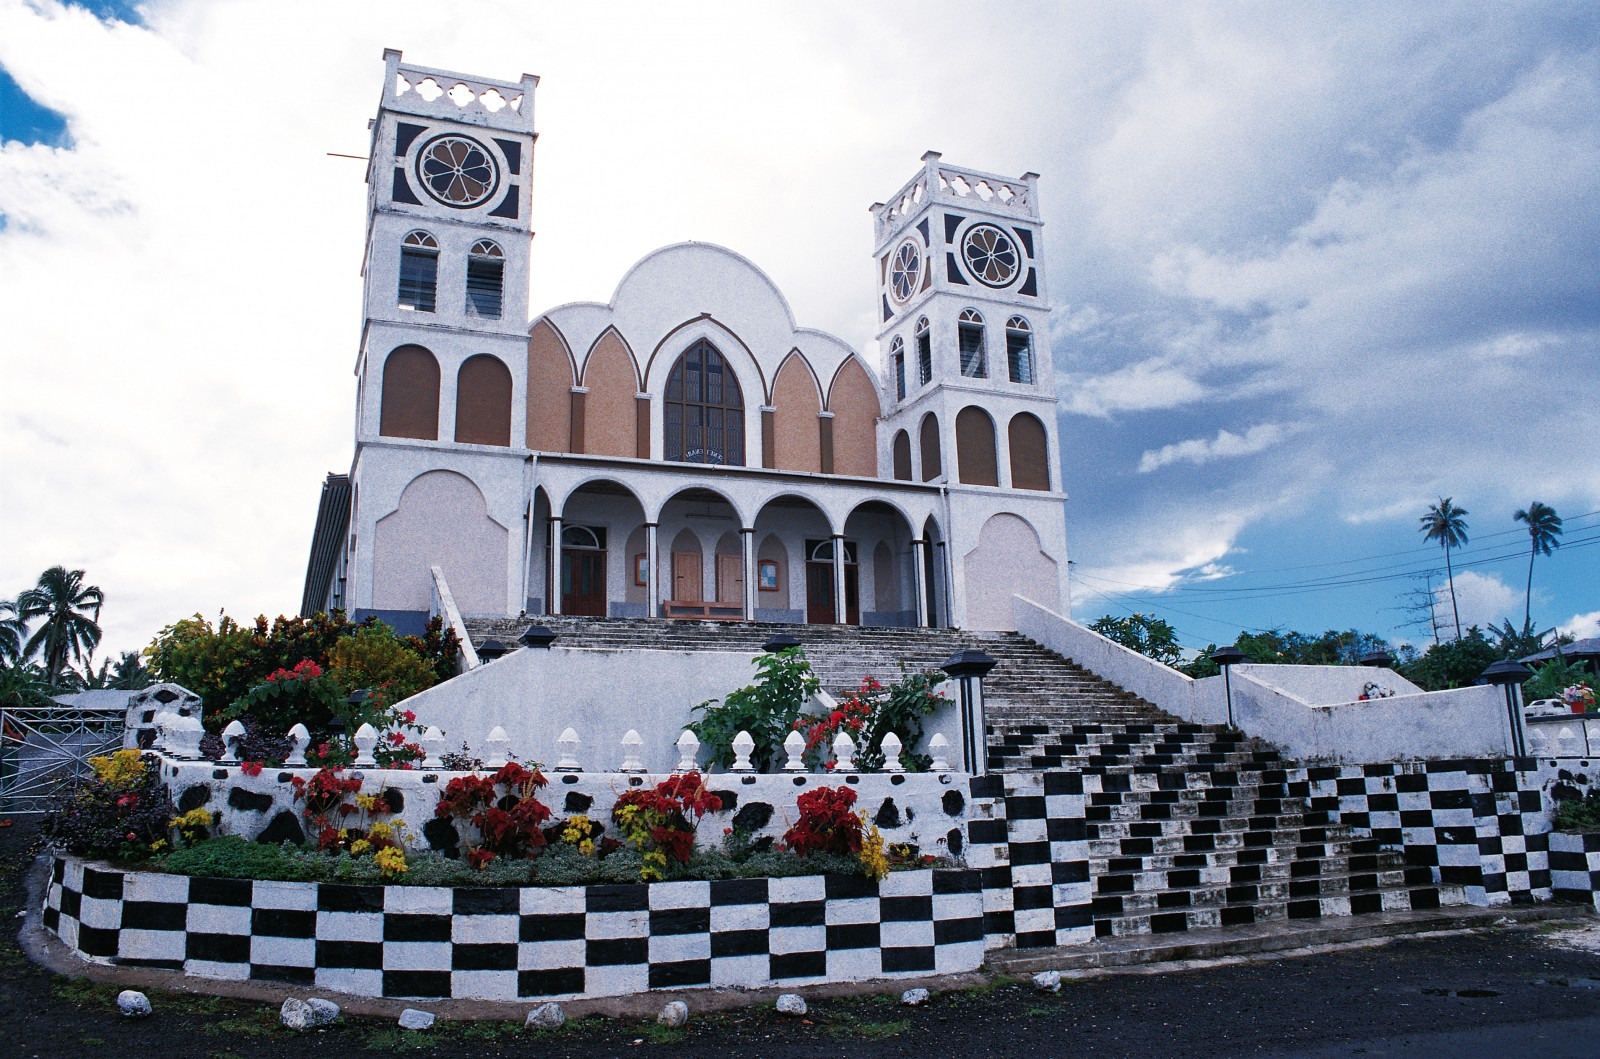 The grand construction and rich decoration of the churches of Samoa speak not just of the reverence in which these focal points of the community are held, but also of inter-village rivalry to be the most generous supporters. It is a matter of honour for a village to donate more than its neighbour.